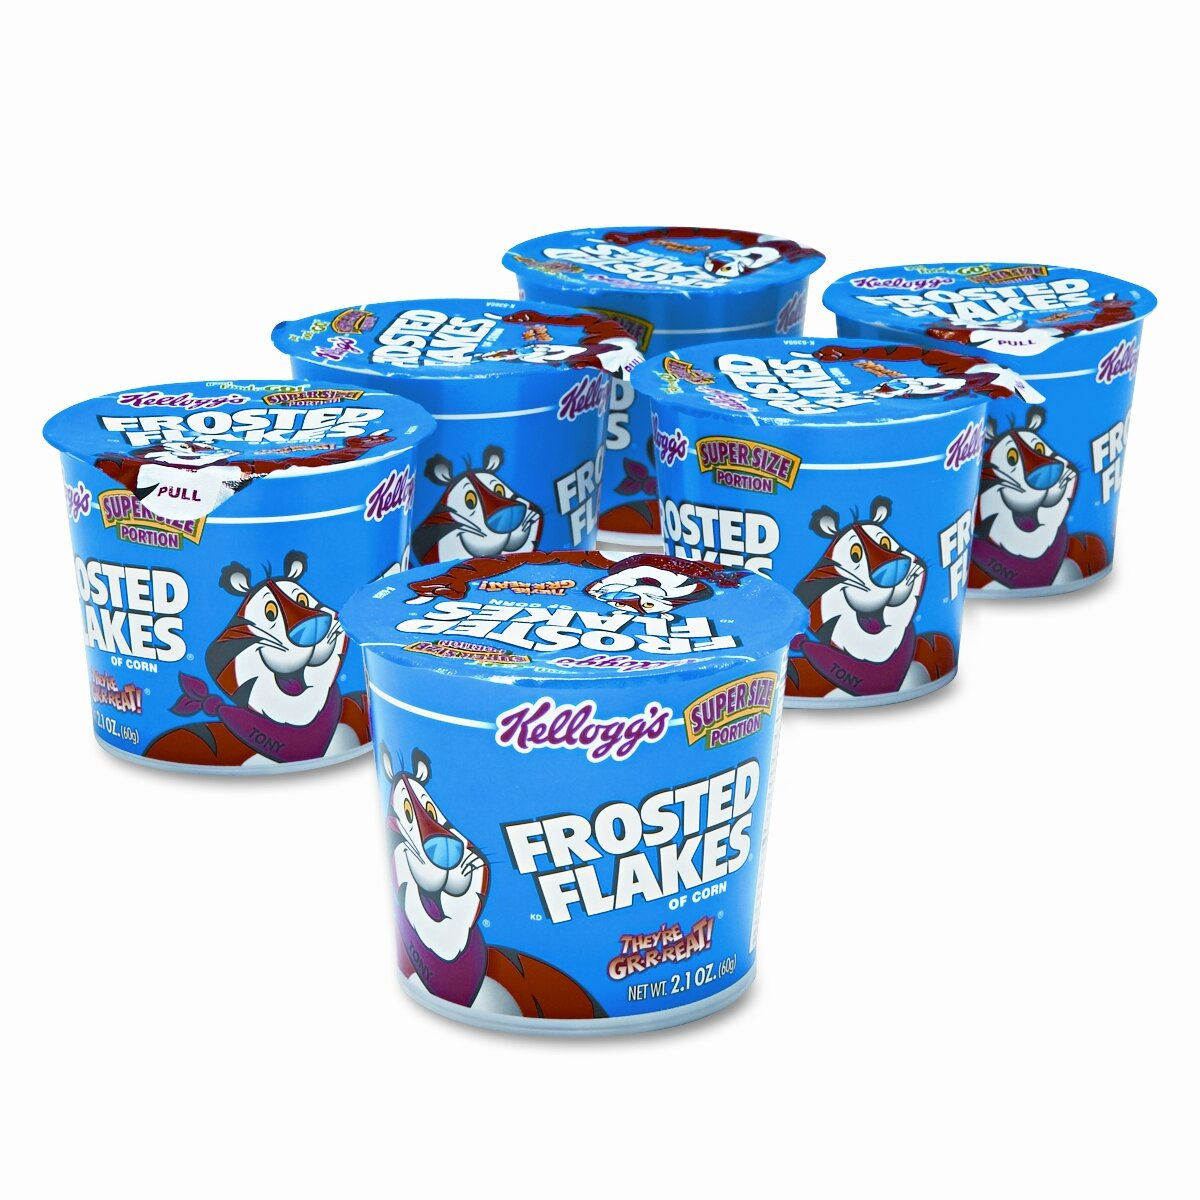 Breakfast Cereal, Frosted Flakes, Single-Serve 2.1oz Cup